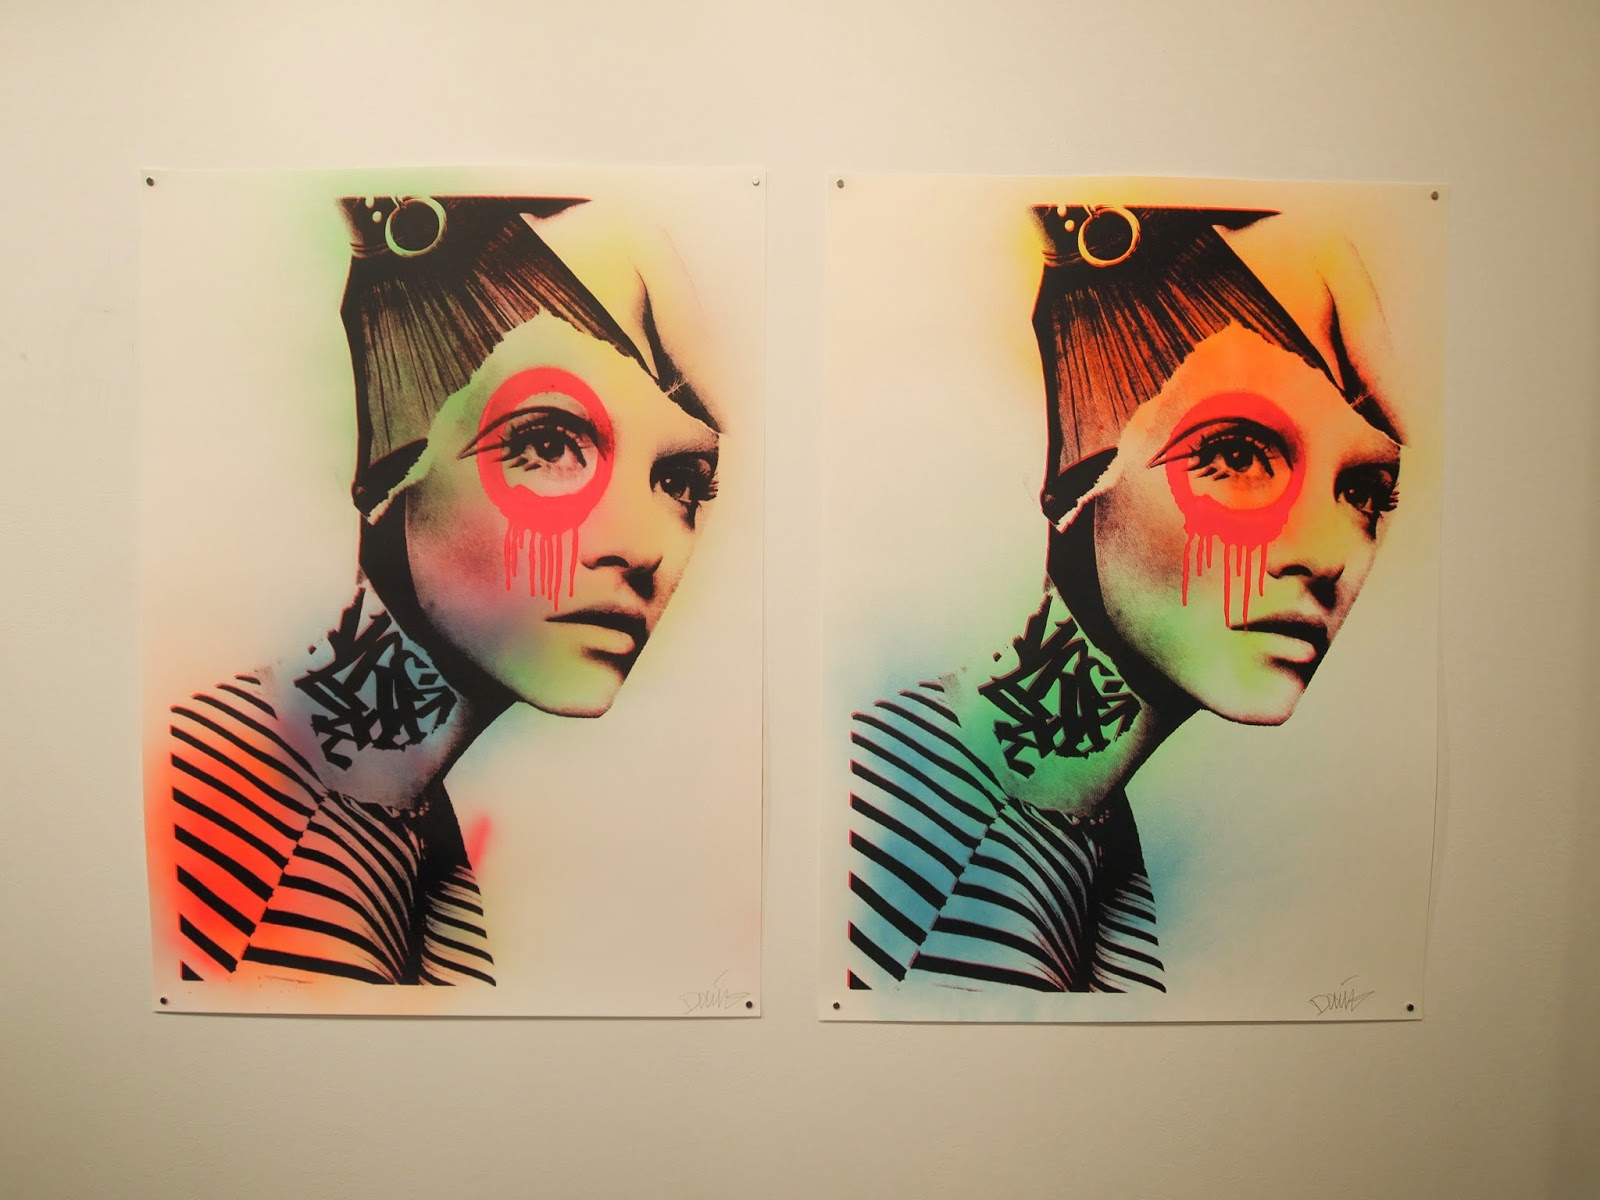 Preview: Dain Solo Show @ Folioleaf Gallery – Dumbo Brooklyn, NYC